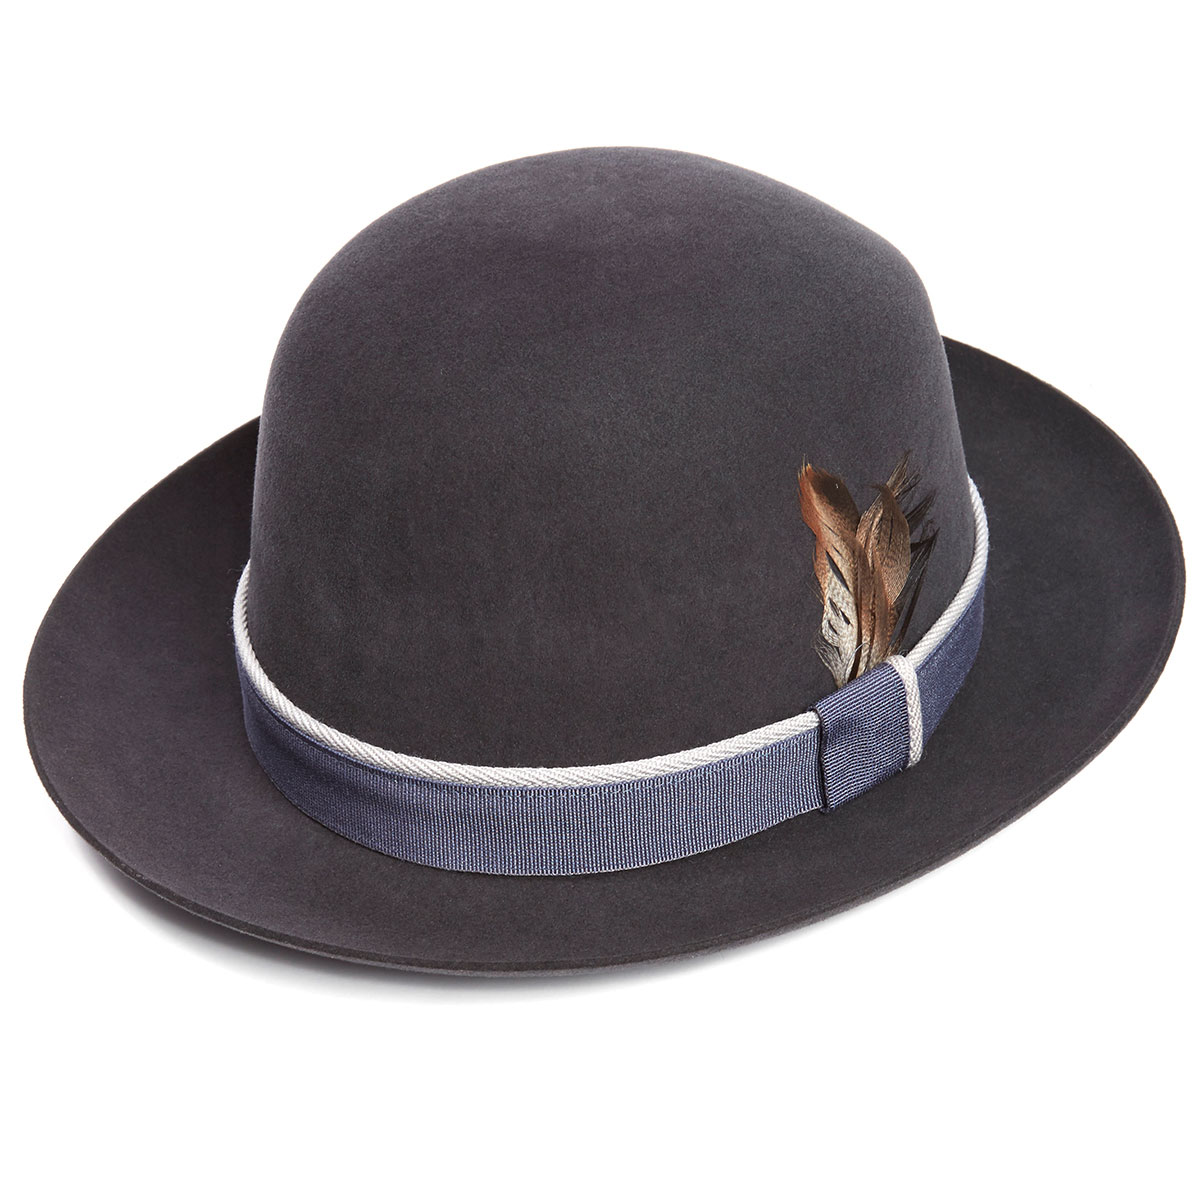 Seasonal Foldaway Fur Felt Trilby Hat in Bessemer - Bessemer in Size 55cm